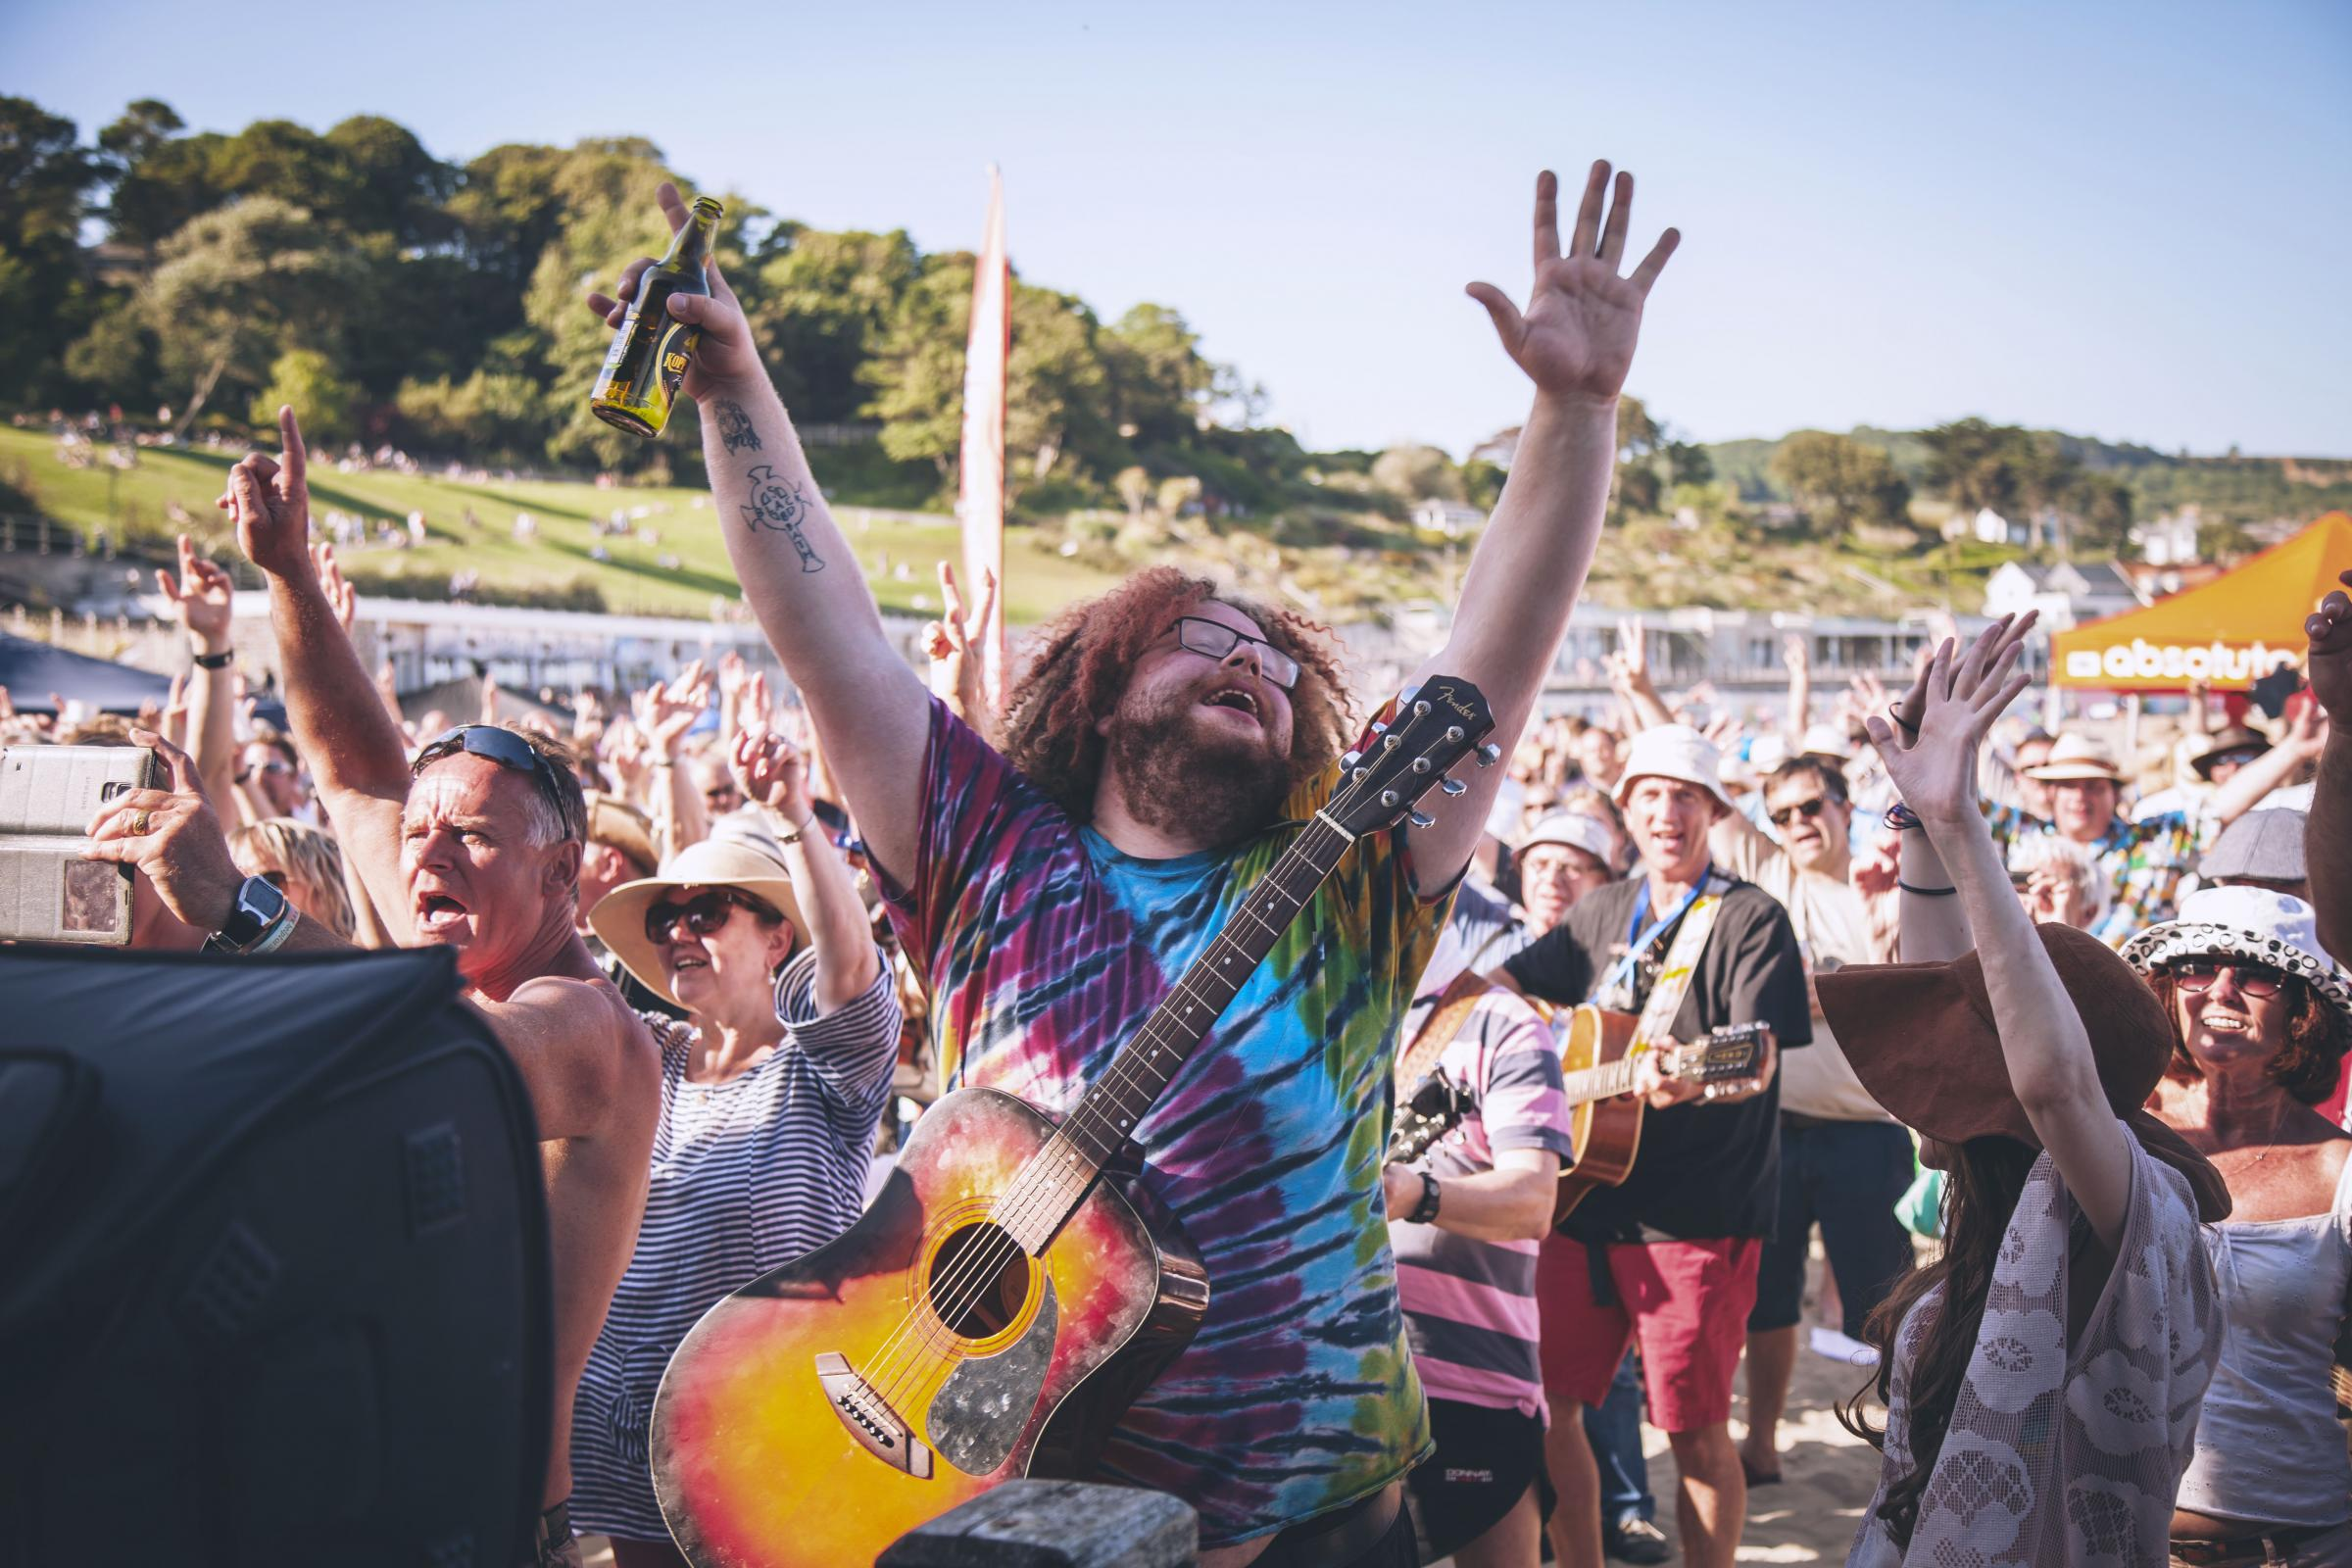 Here's what to look forward to for Guitars on the Beach 2018